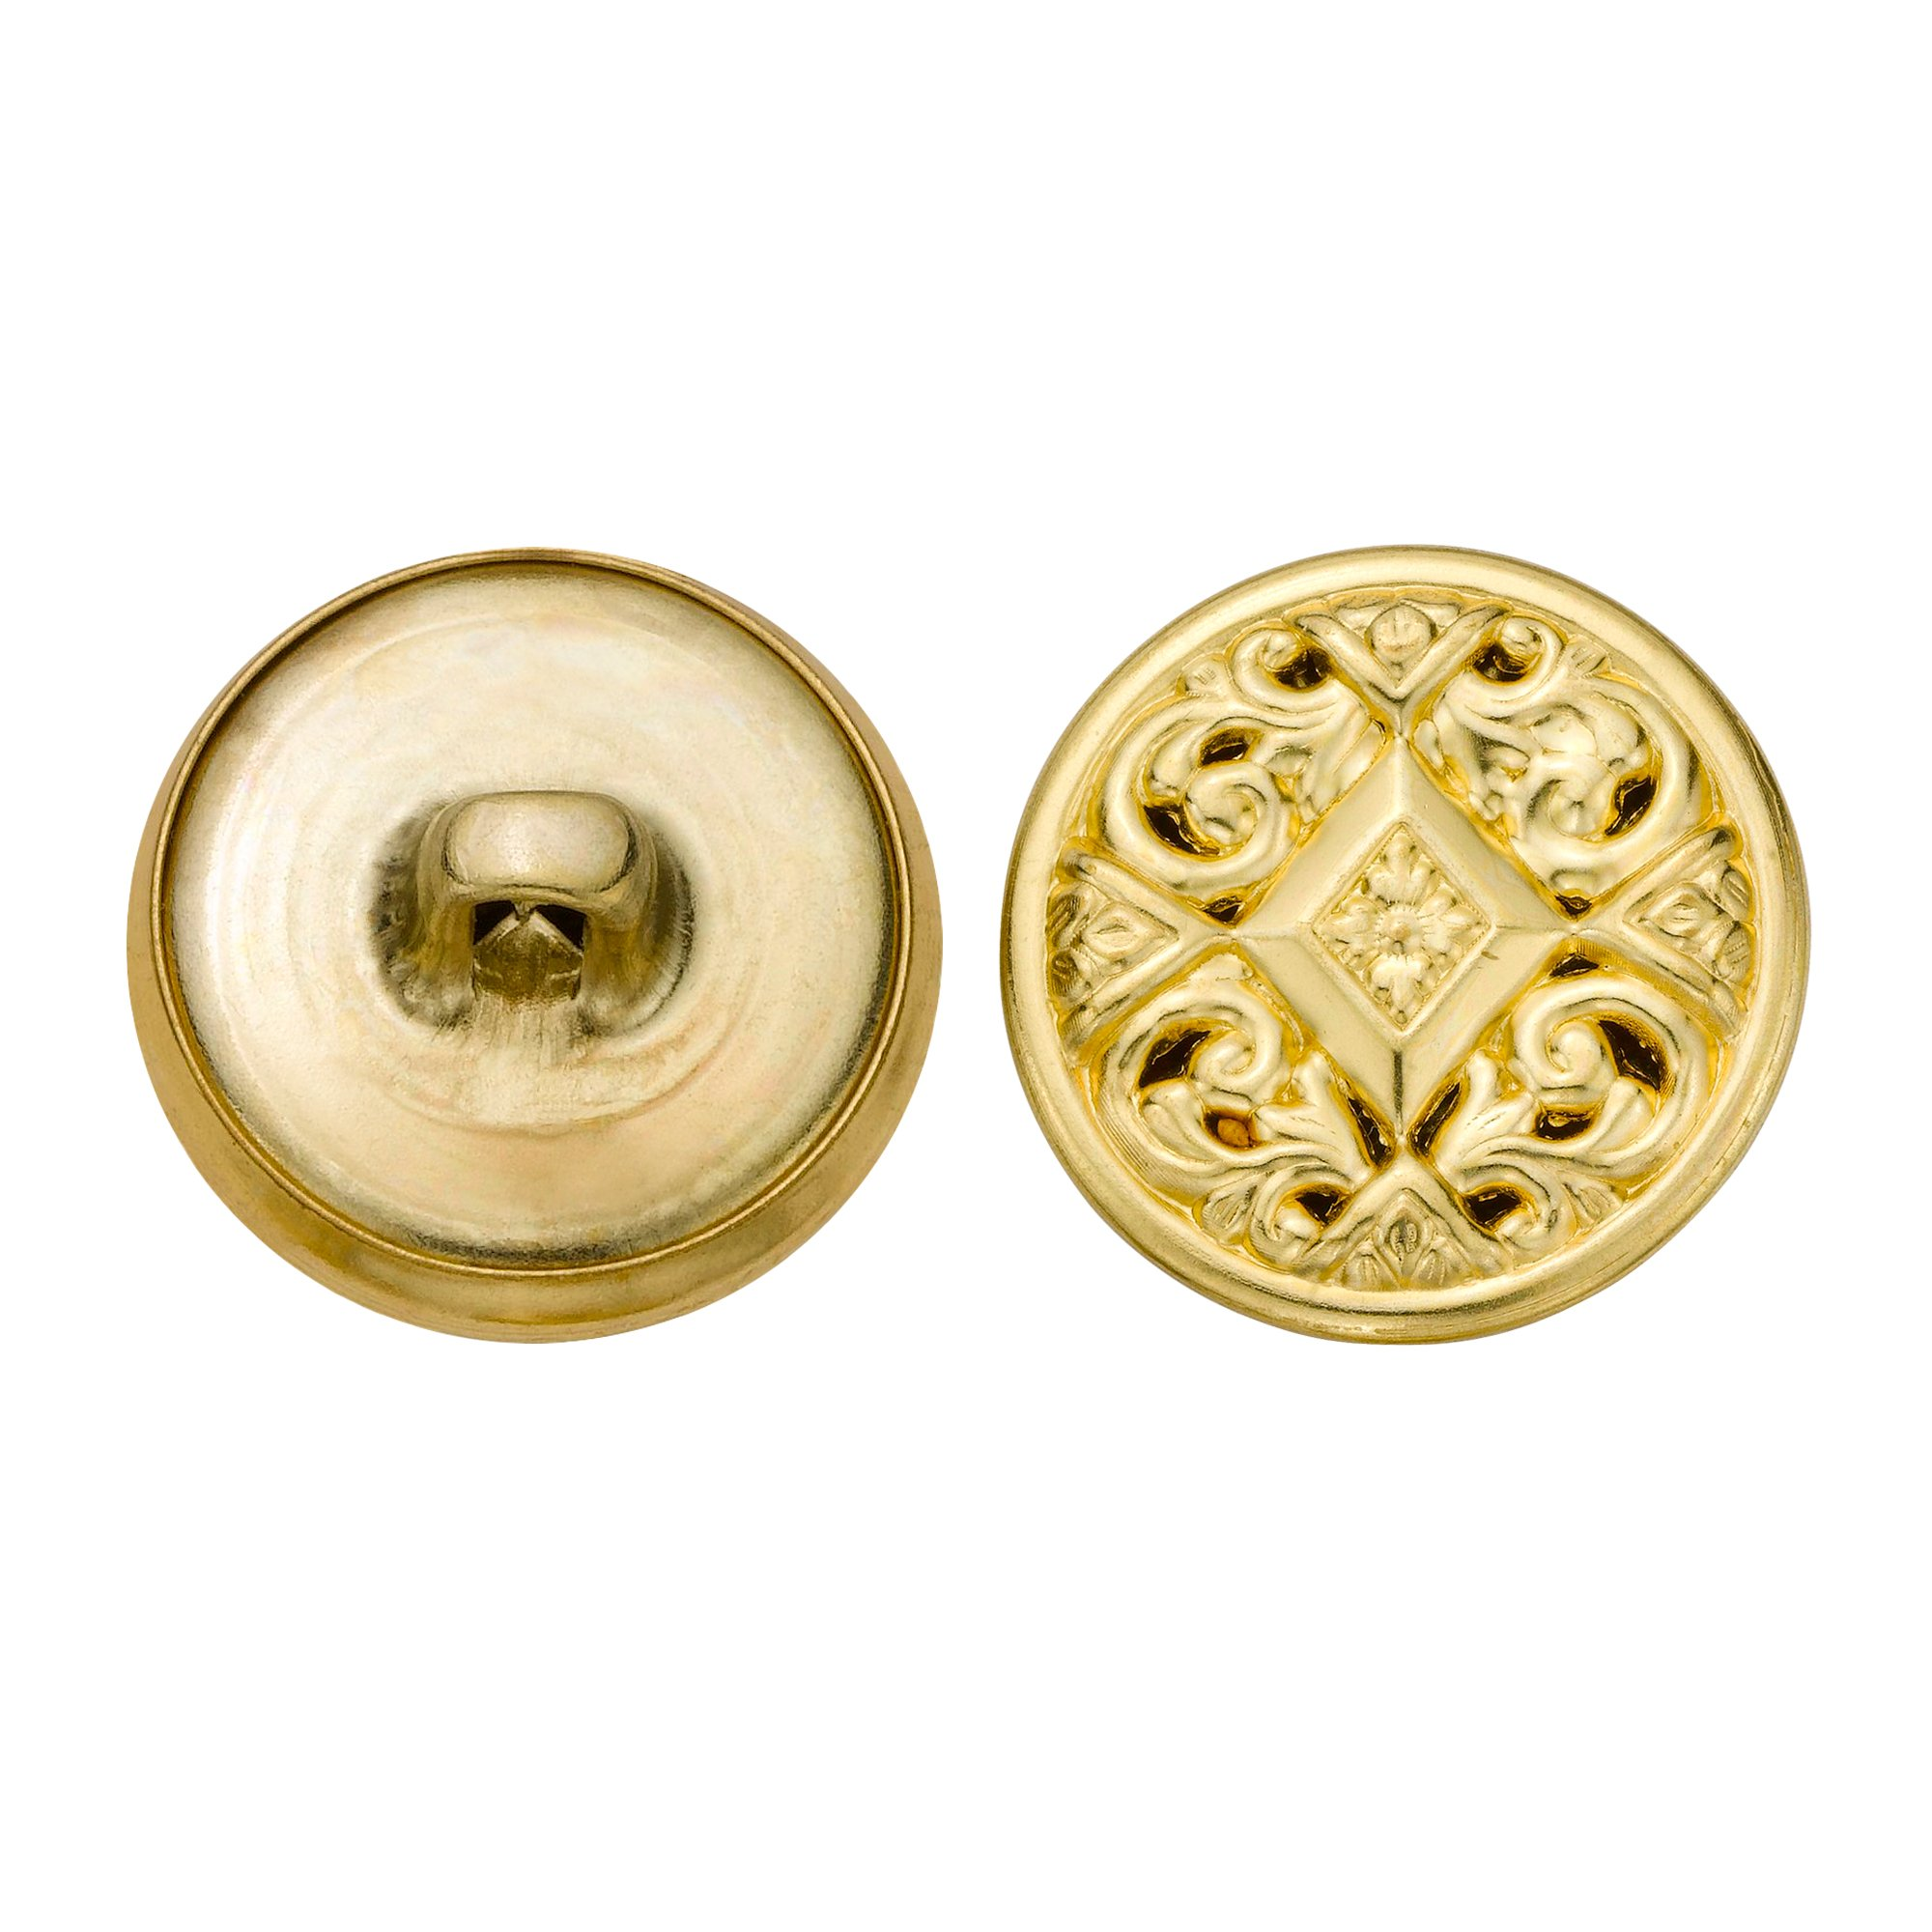 C&C Metal Products 5349 Filigree Metal Button, Size 30 Ligne, Gold, 36-Pack